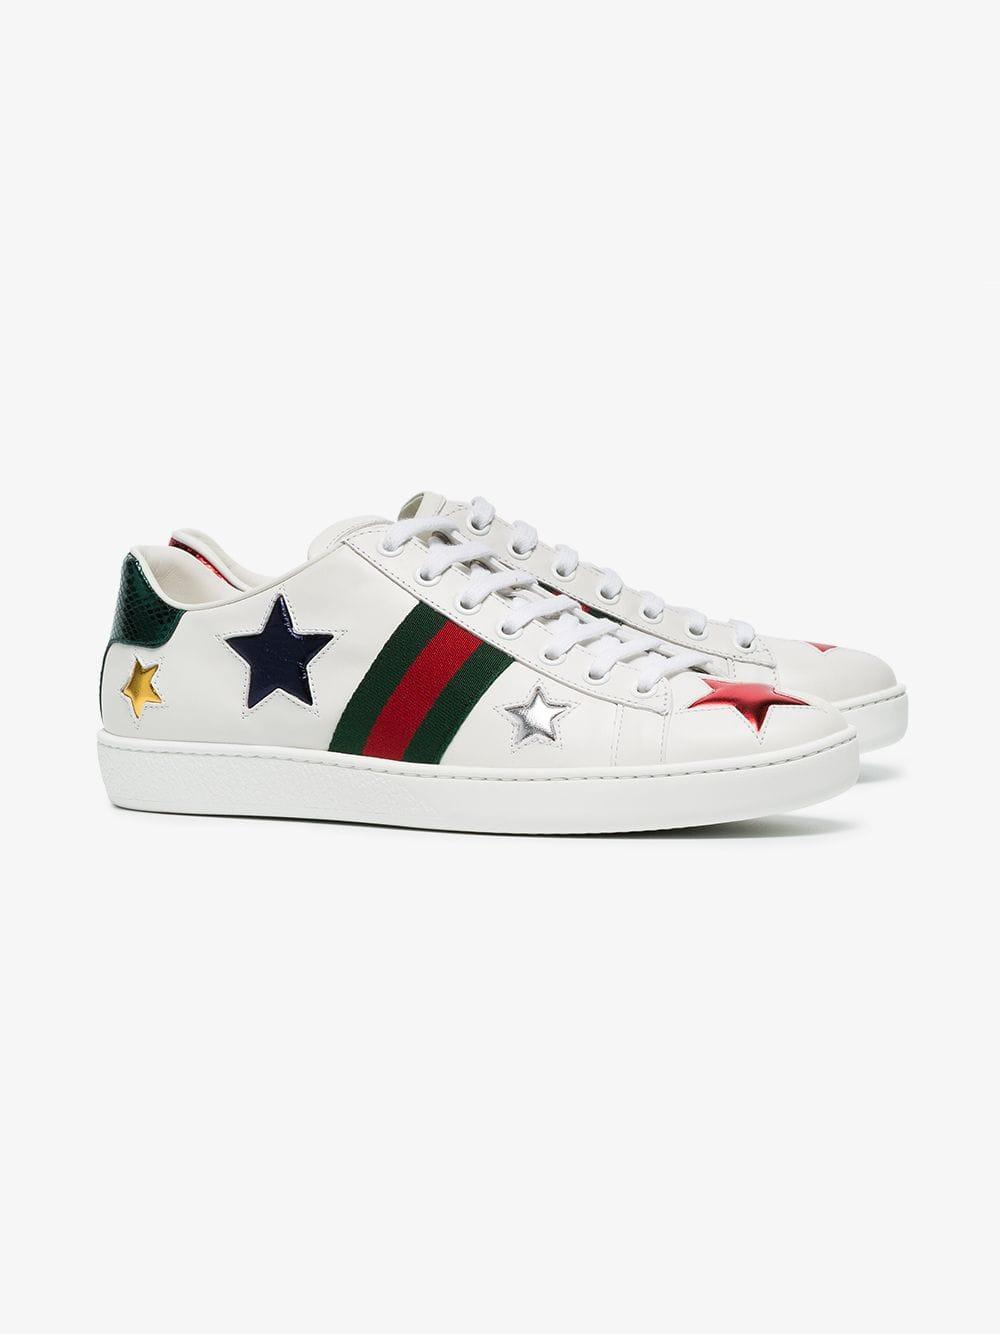 6a7bfdbde581 Gucci - White Ace Low-top Leather Sneakers - Lyst. View fullscreen